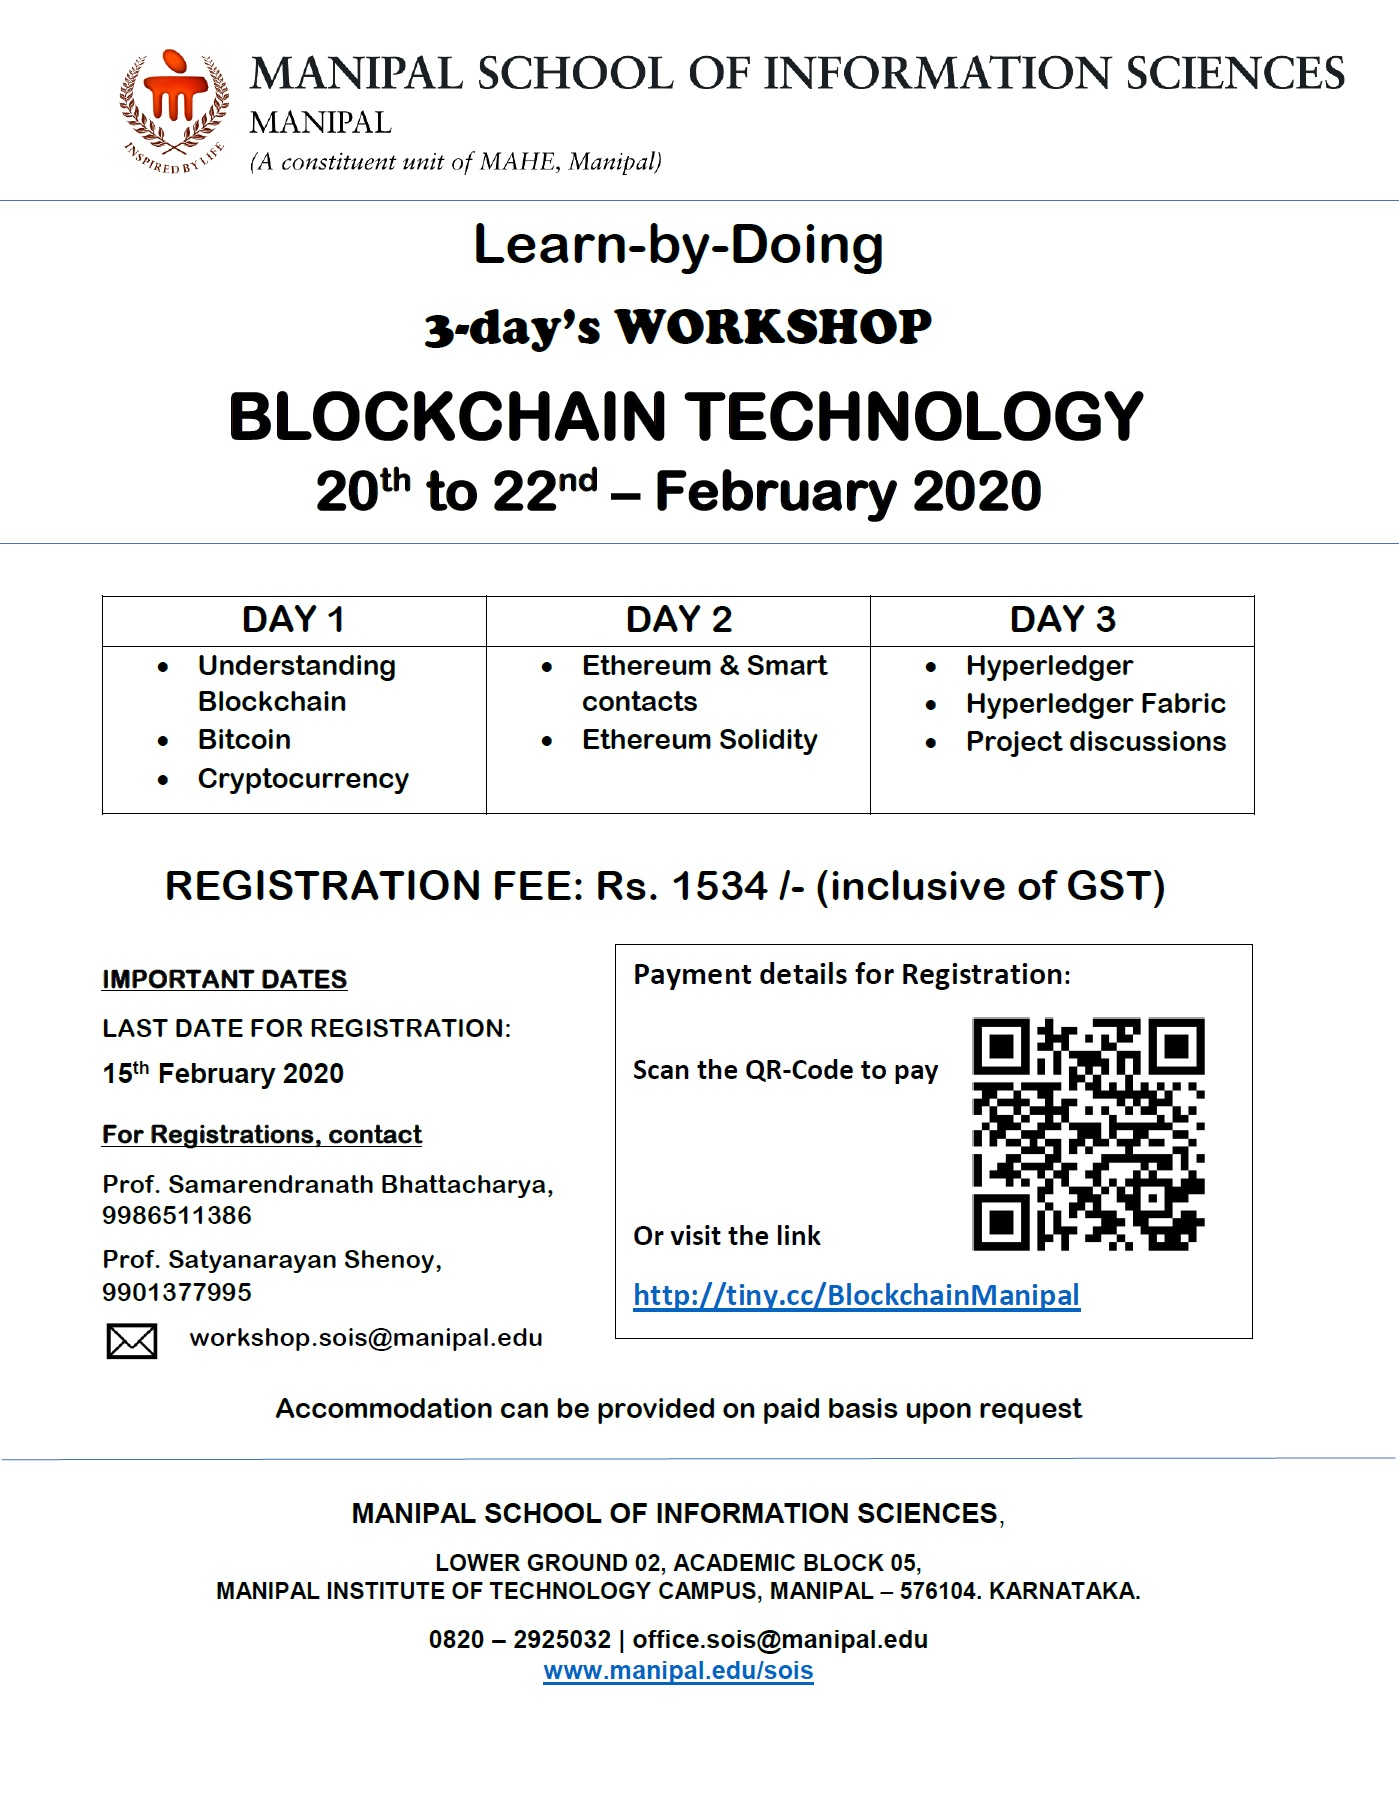 Learn by Doing Workshop on Blockchain Technology 2020